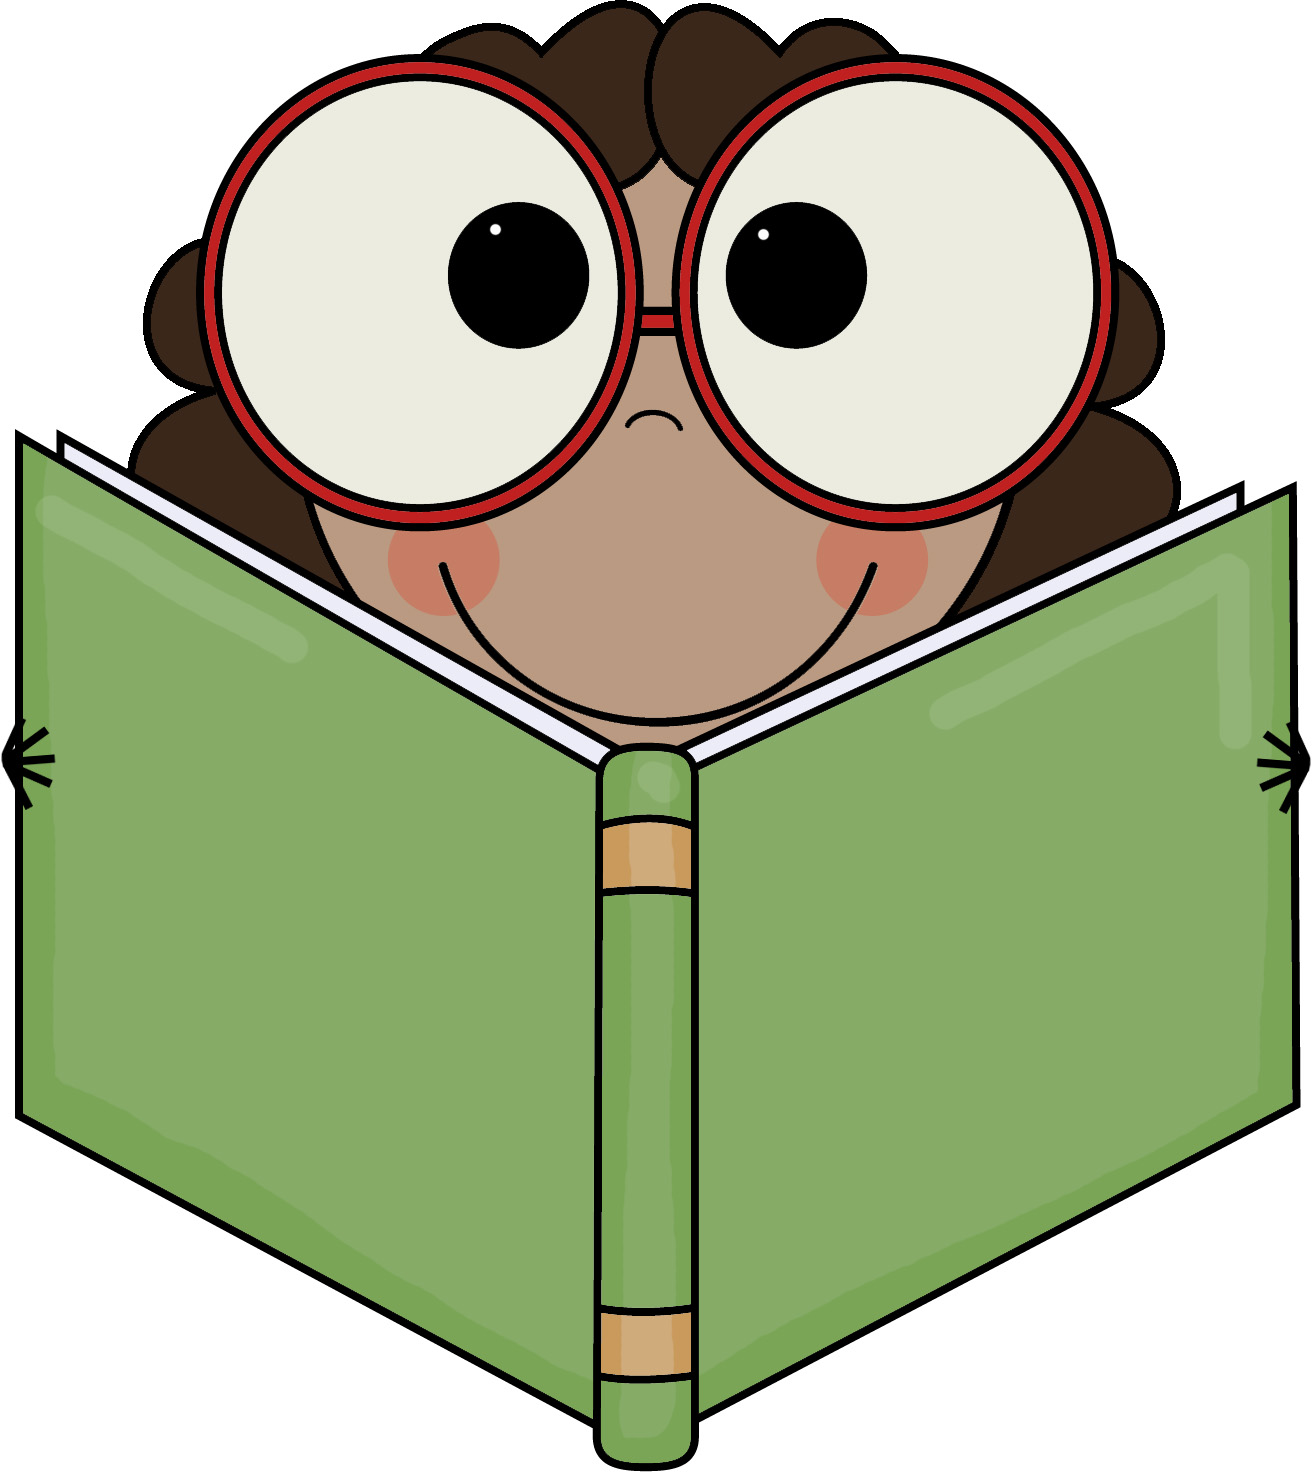 Eyes in book clipart jpg freeuse download Book clipart eyes - ClipartFest jpg freeuse download